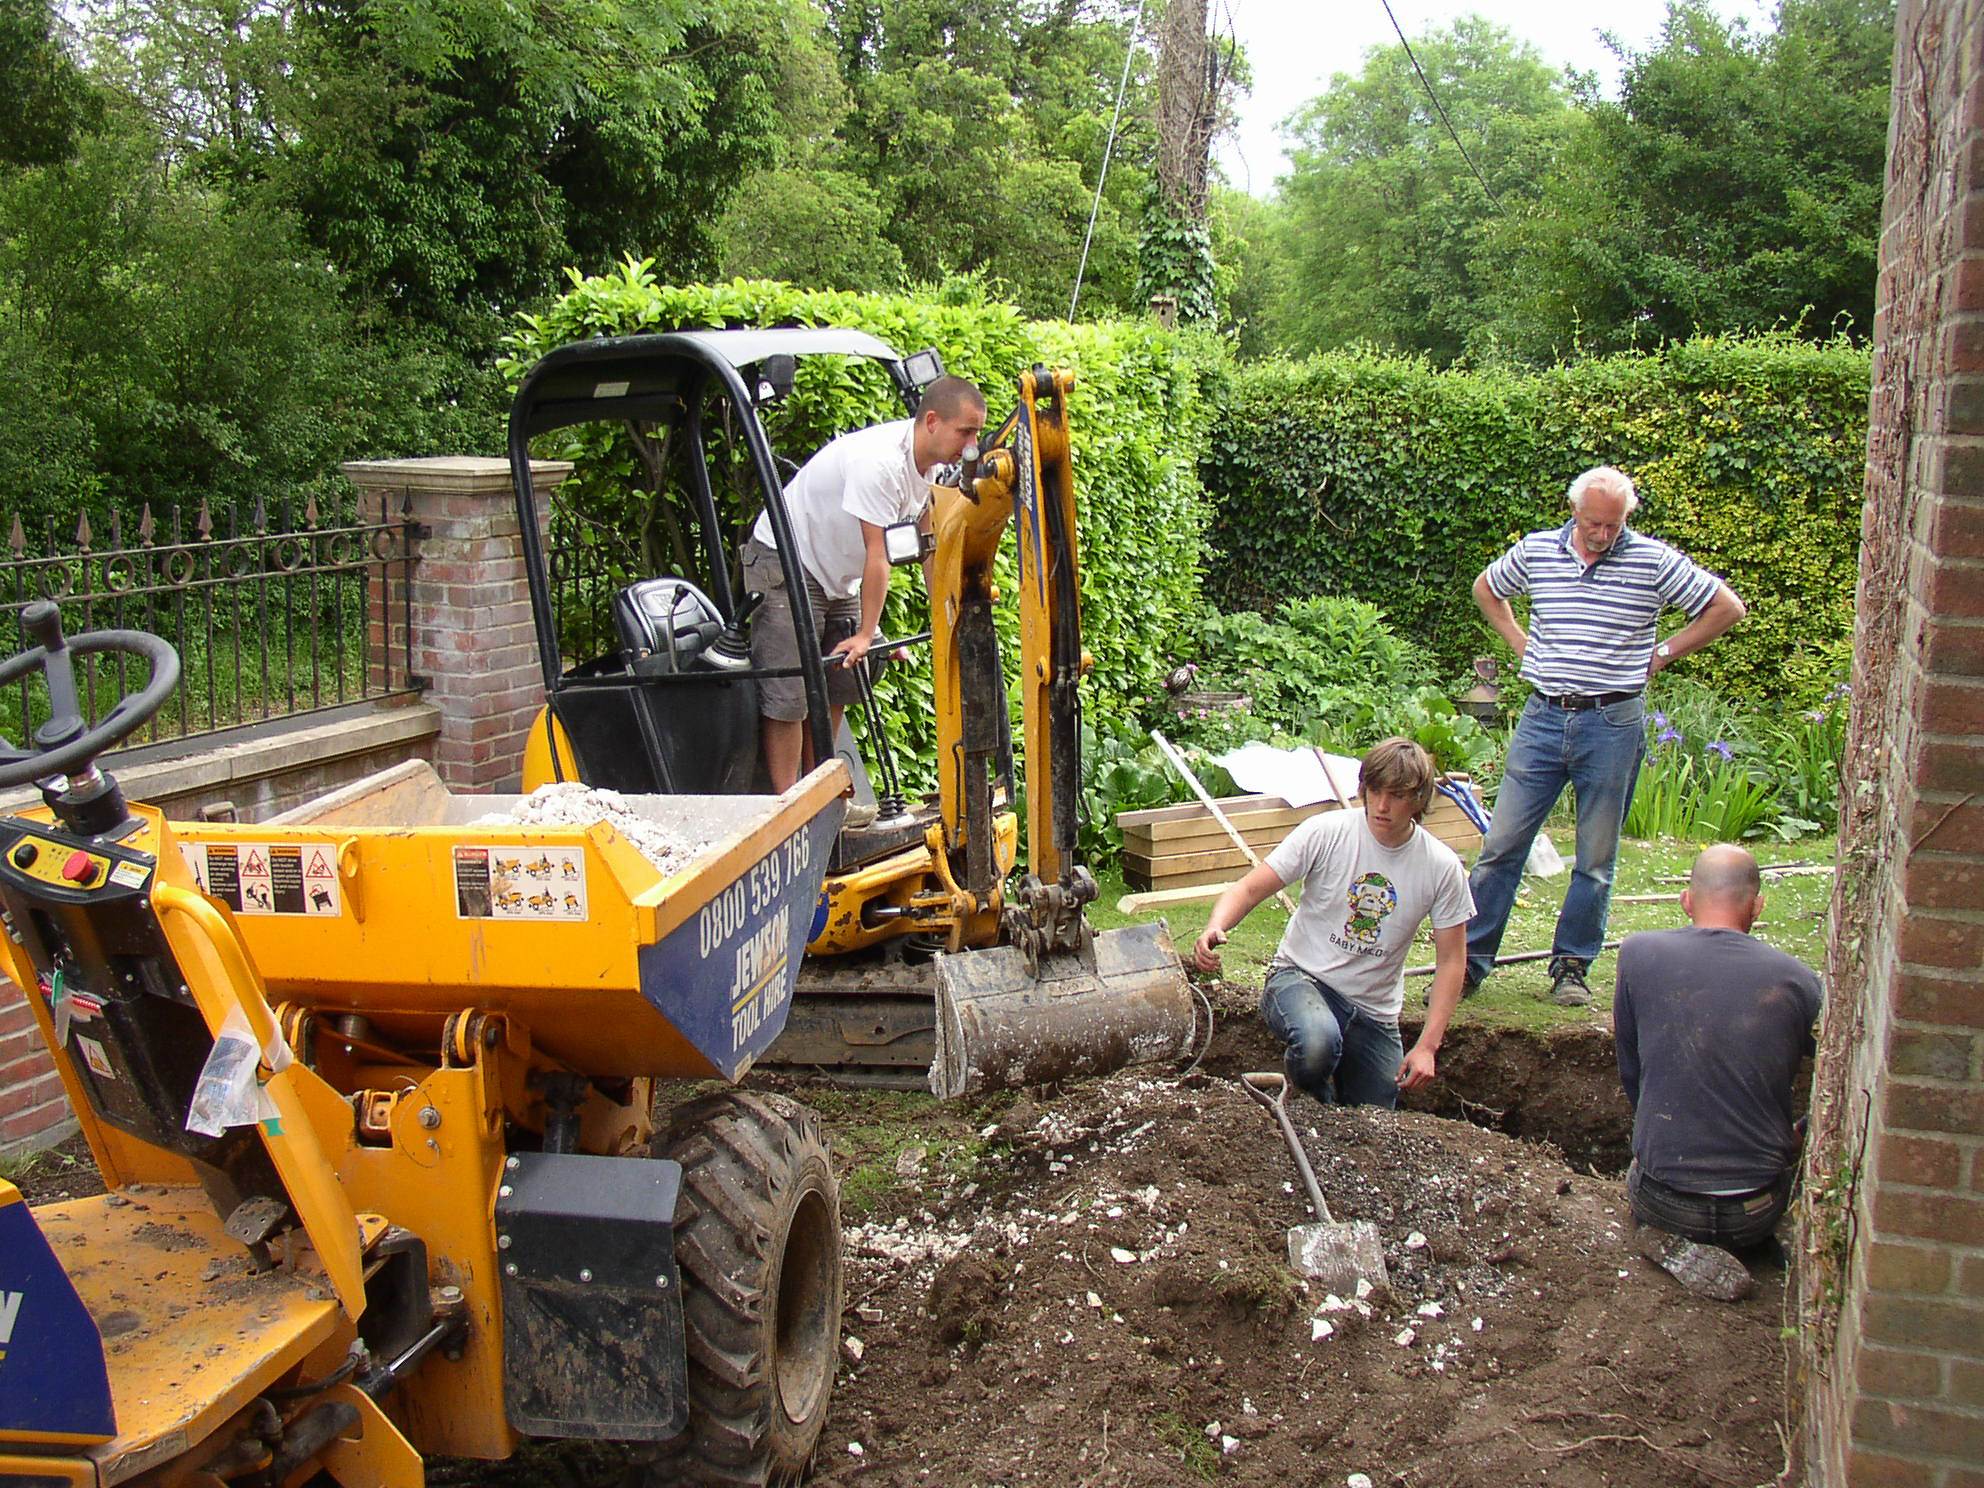 Digging out foundations